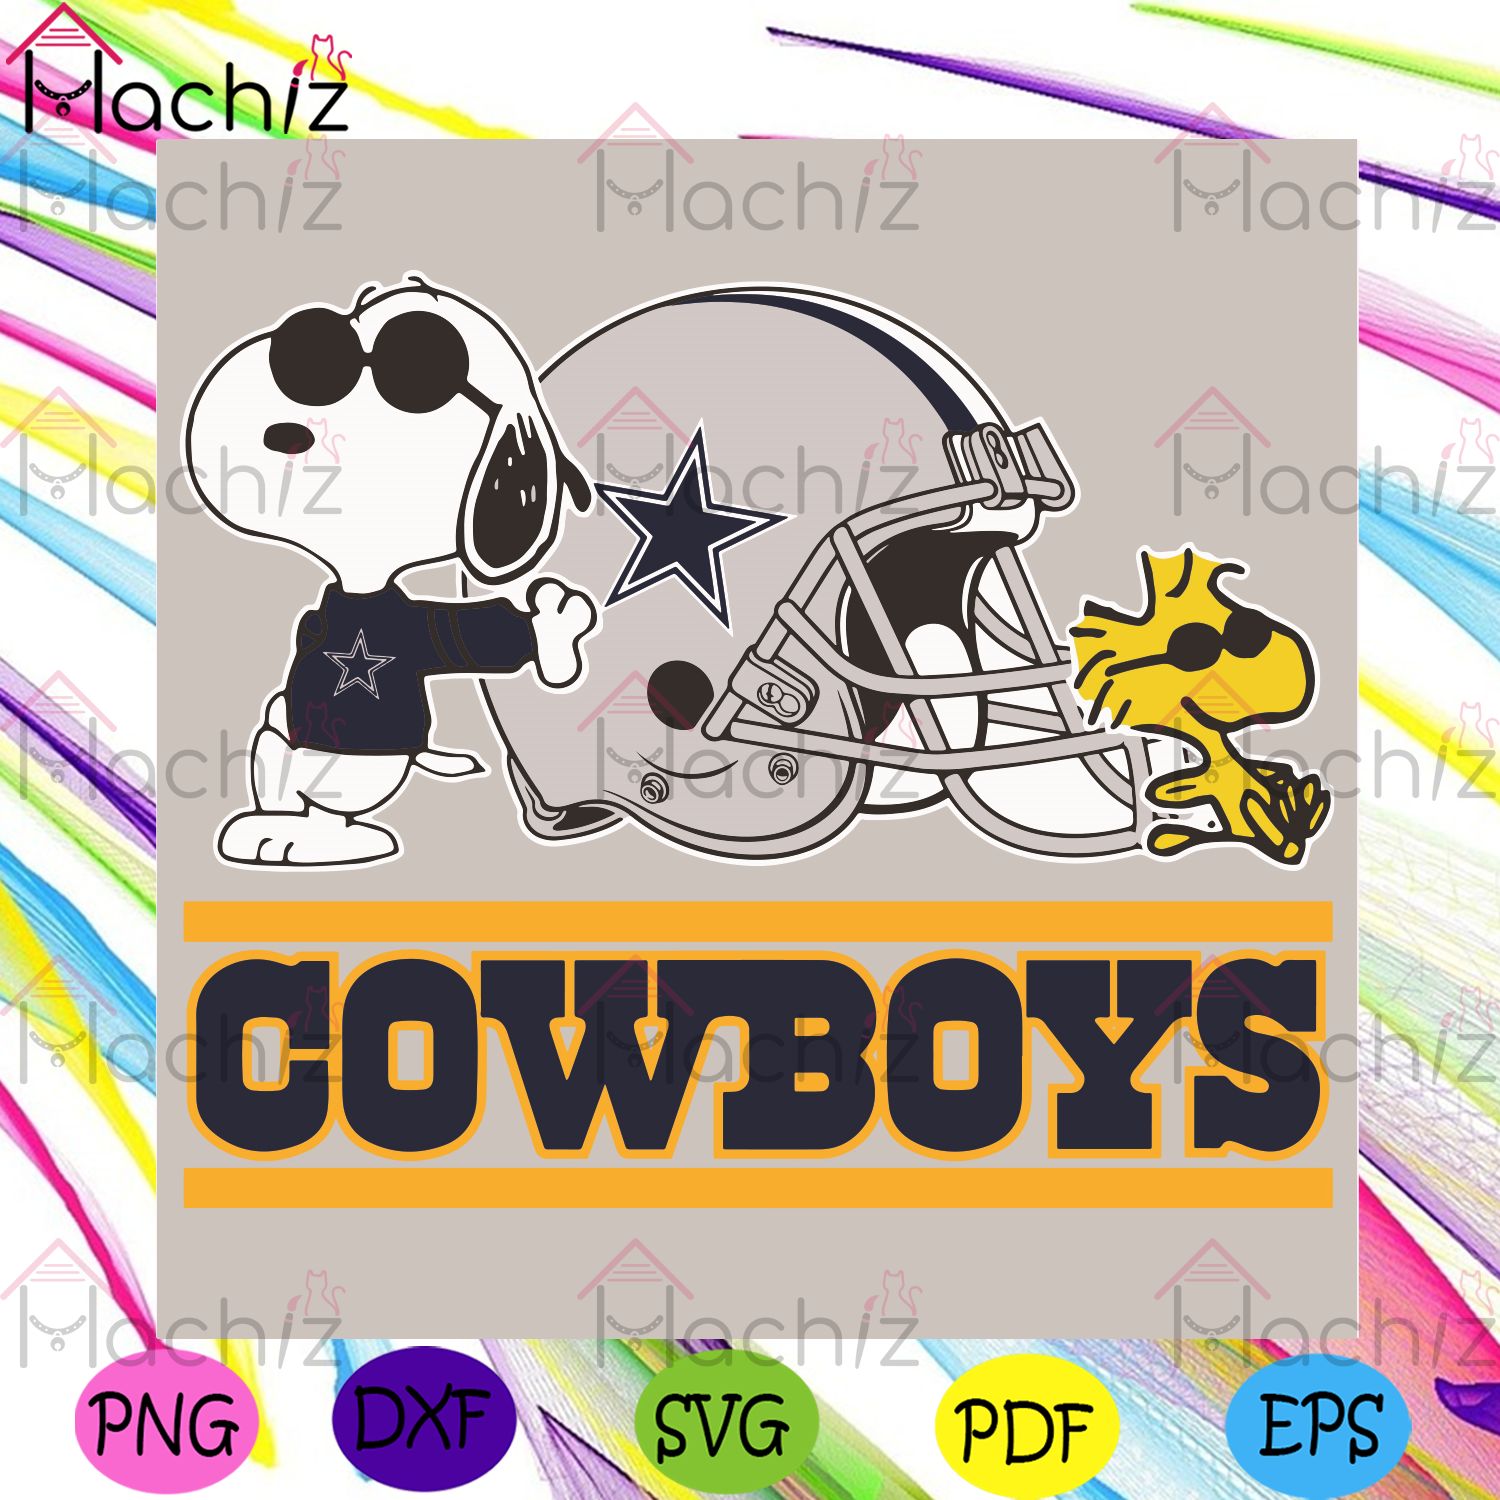 Dallas Cowboys Snoopy Woodstock Svg, Sport Svg, Dallas Cowboys Svg, Dallas Cowboys Football Team Svg, Dallas Cowboys NFL Svg, Dallas Cowboys Helmet Svg, Snoopy Svg, Dallas Cowboys Snoopy Svg, Woodstock Snoopy Svg, NFL Svg